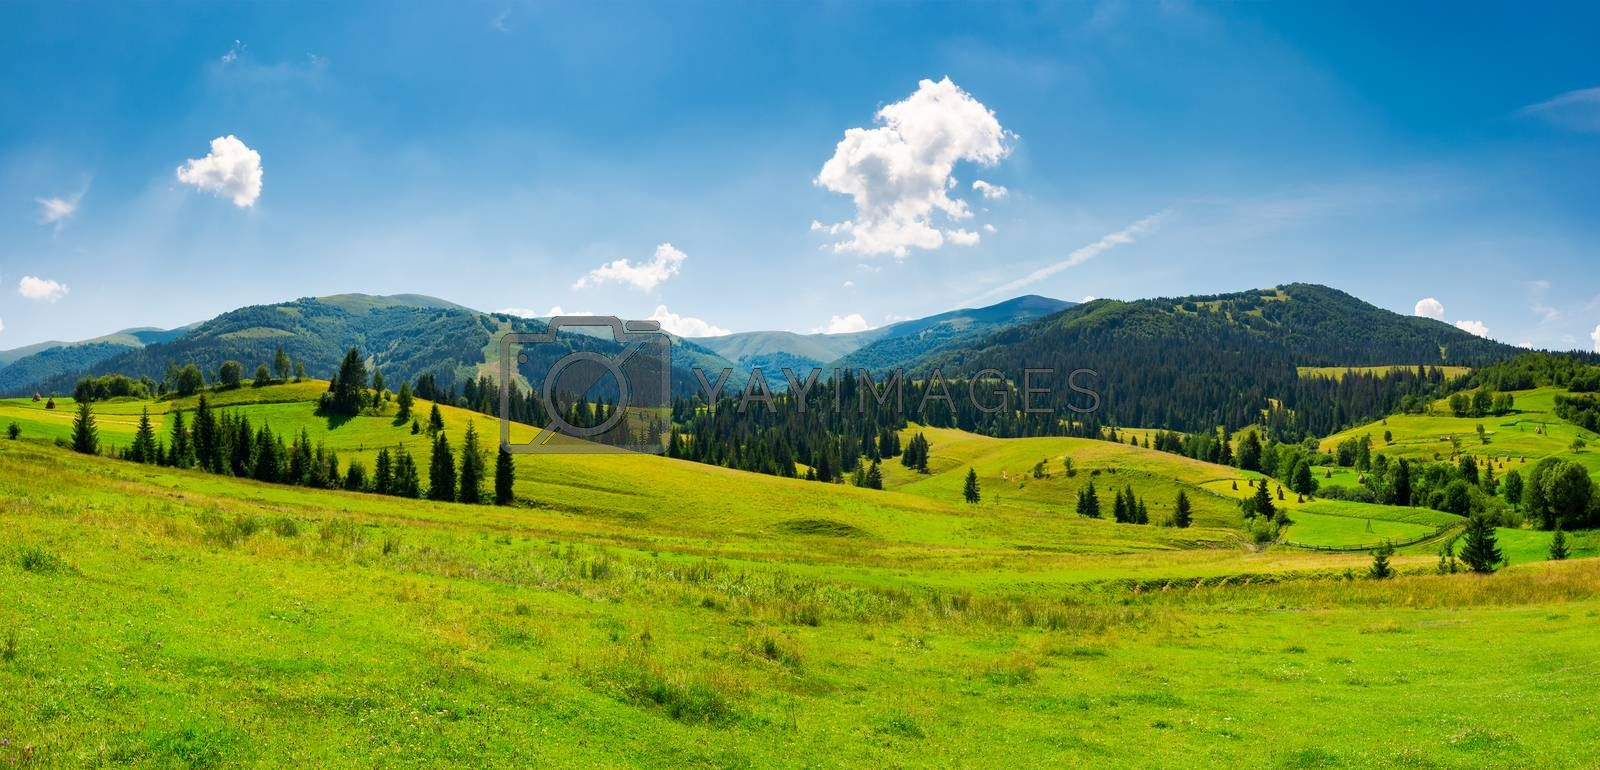 panorama of mountainous landscape in summer. spruce forest on a grassy hills in the valley of Carpathian mountain. beautiful view of Borzhava mountain ridge with Velykyi verkh peak in the distance